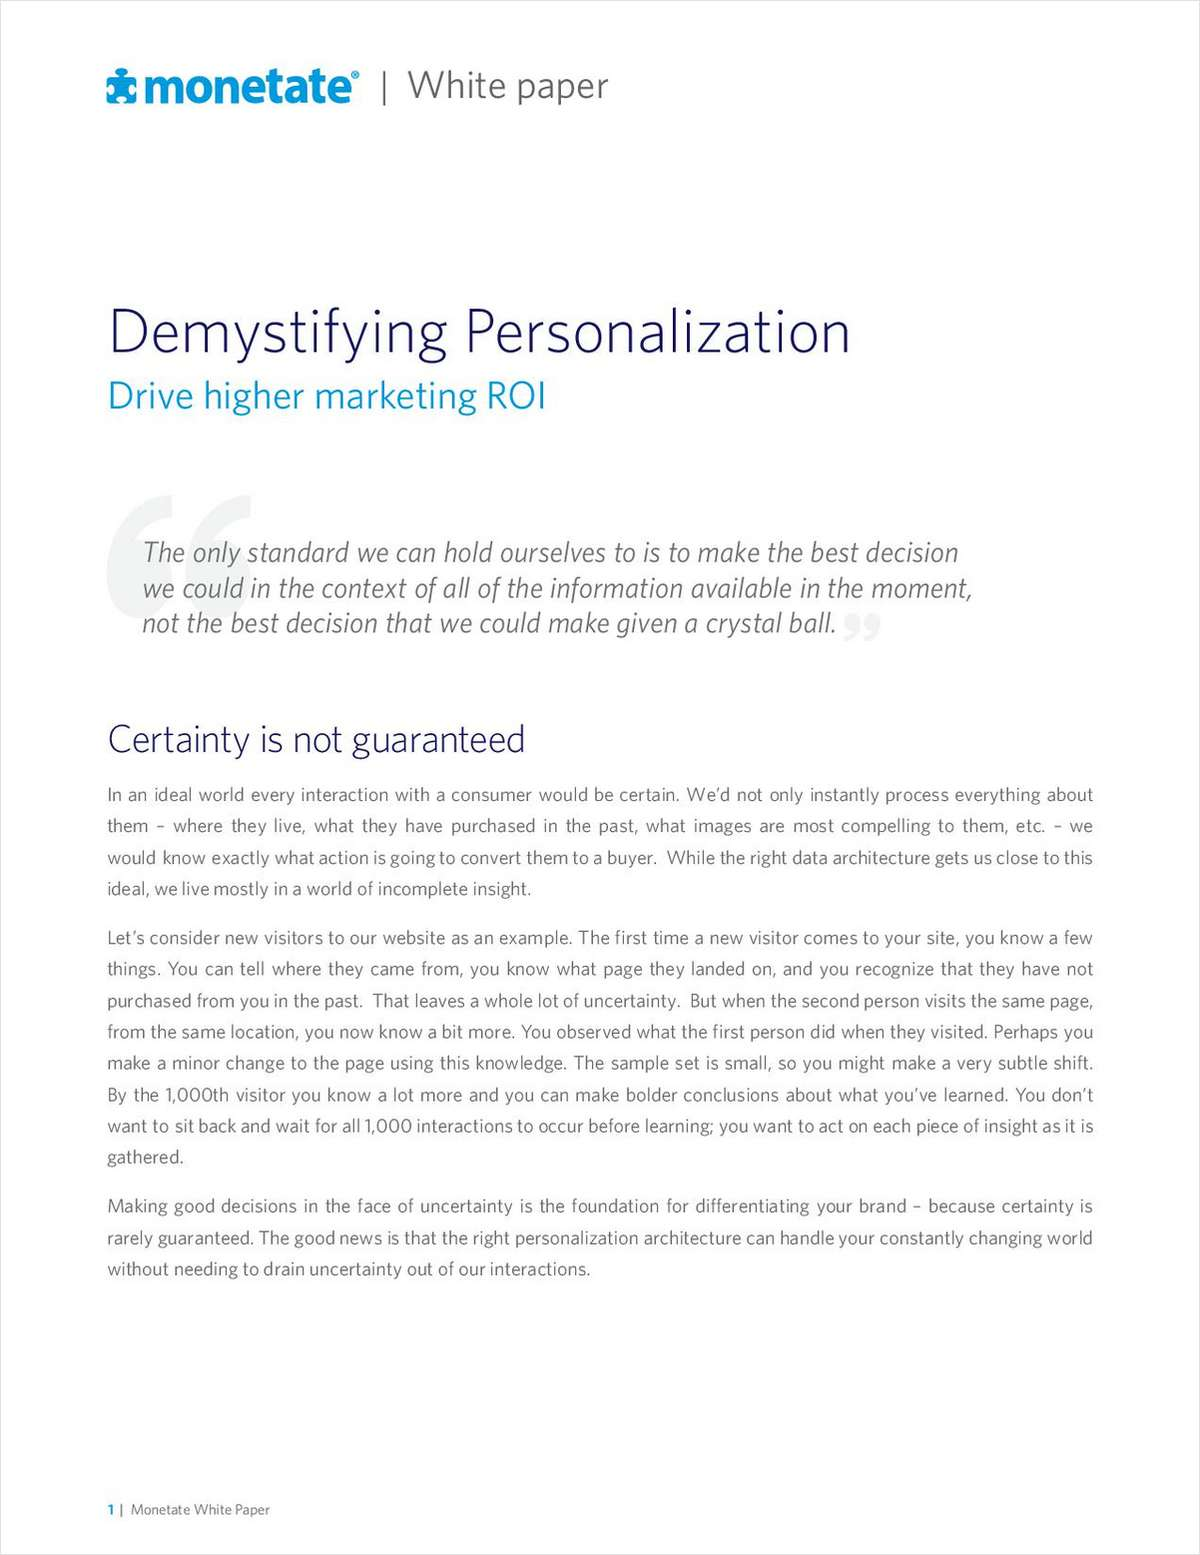 Demystifying Personalization